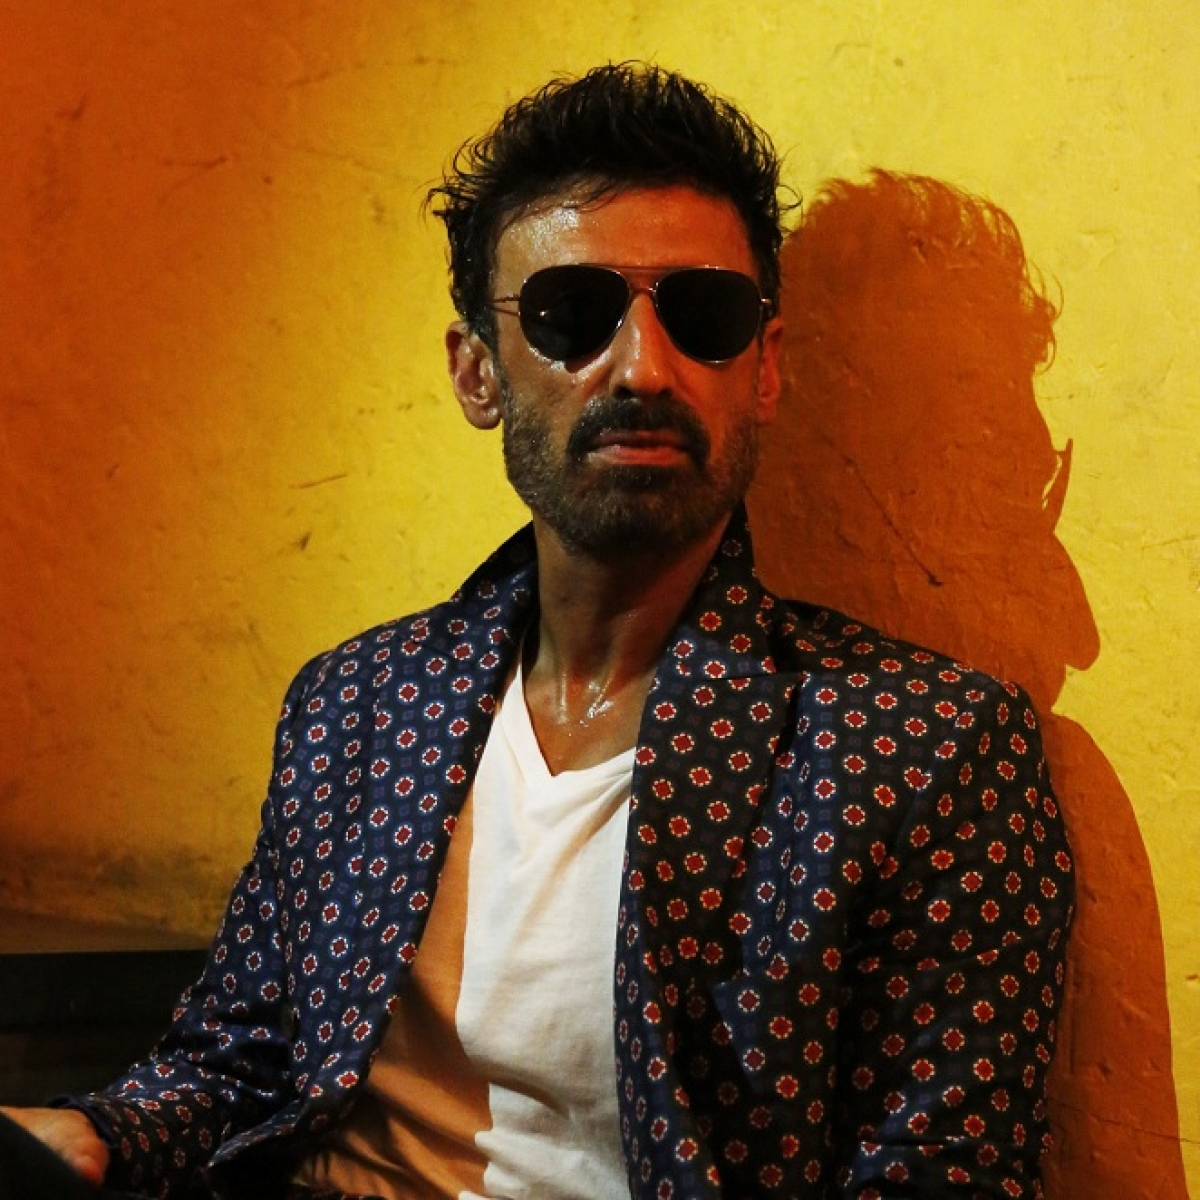 'Big screen has a charm of its own,' says Rahul Dev